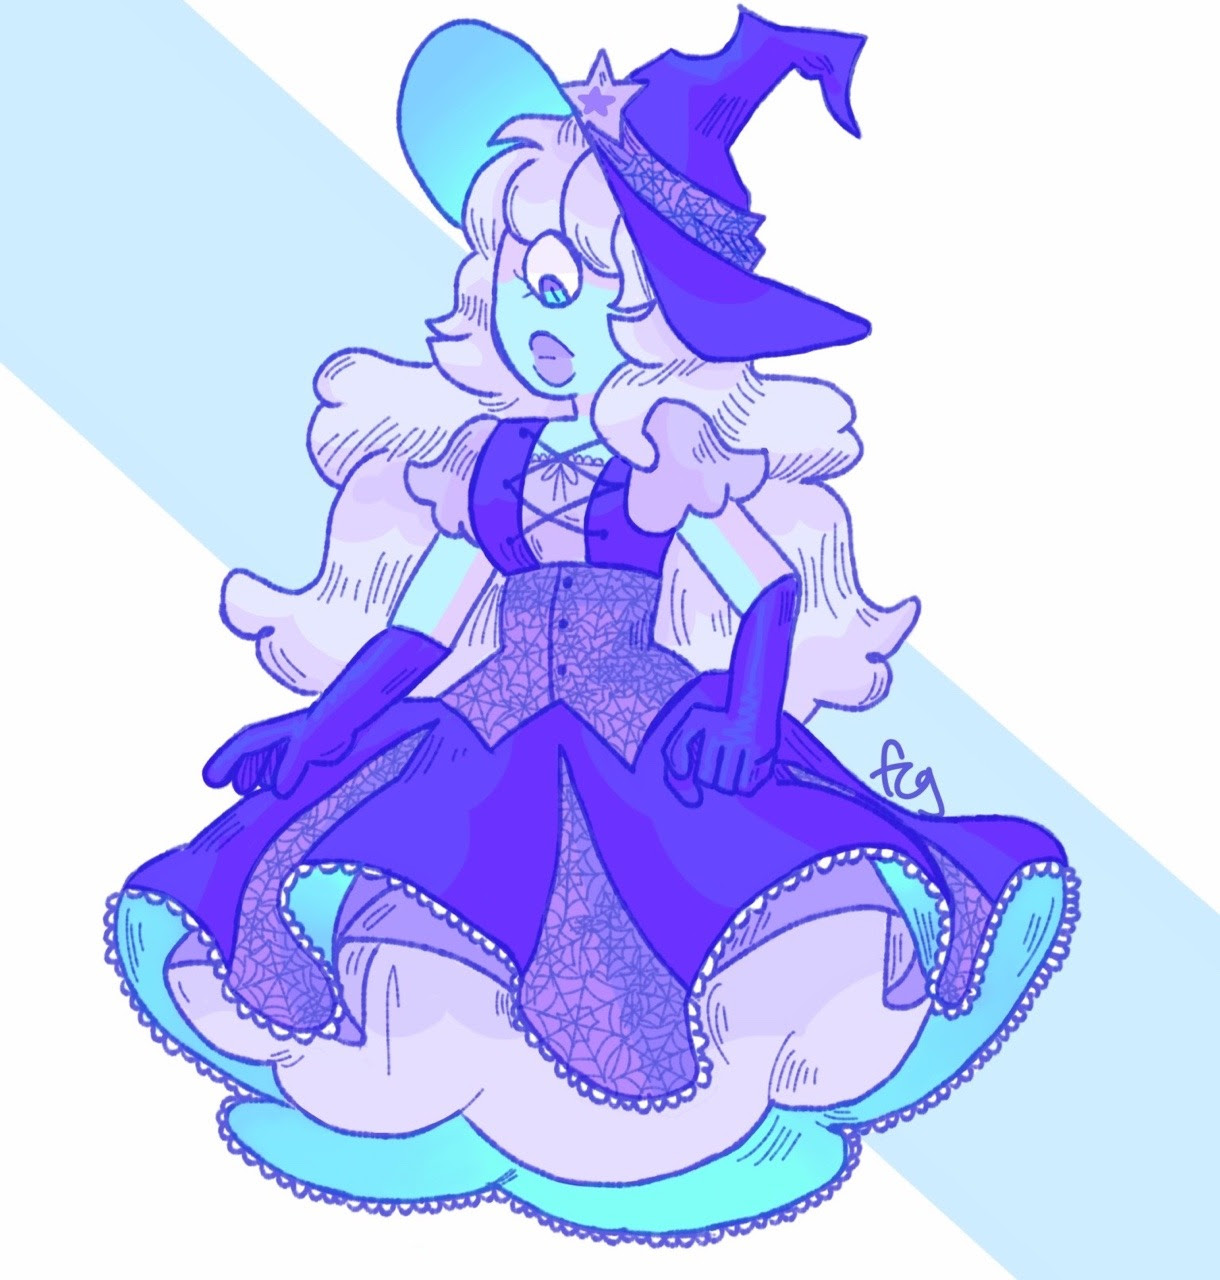 redraw of an old Halloween thing from last year! If u wanna see the original one just message me and I'll send it to u